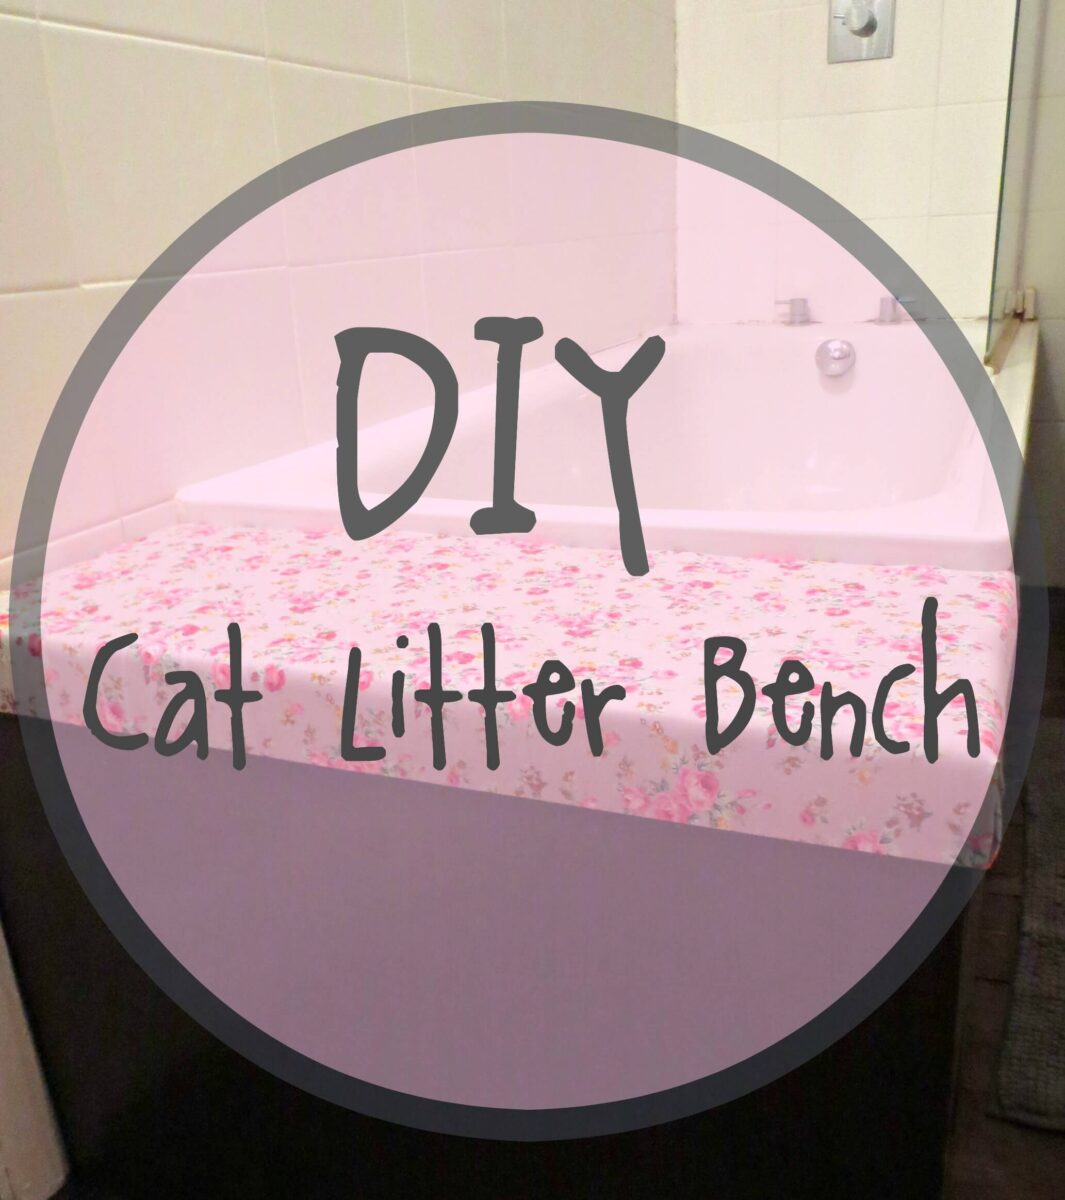 DIY Cat Litter Bench